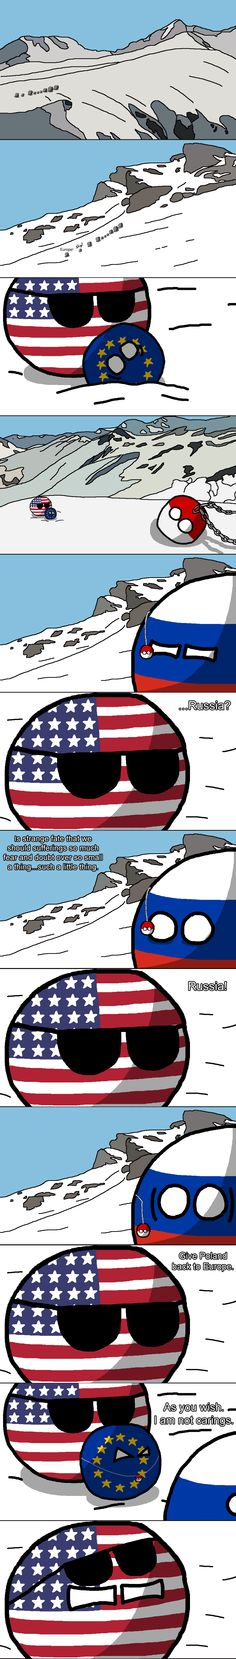 "Lord of the rings  part I ""The Mountain Pass"" ( USA, Russia, Europe, Poland ) by Baron koleye of kolaje #polandball #countryball"